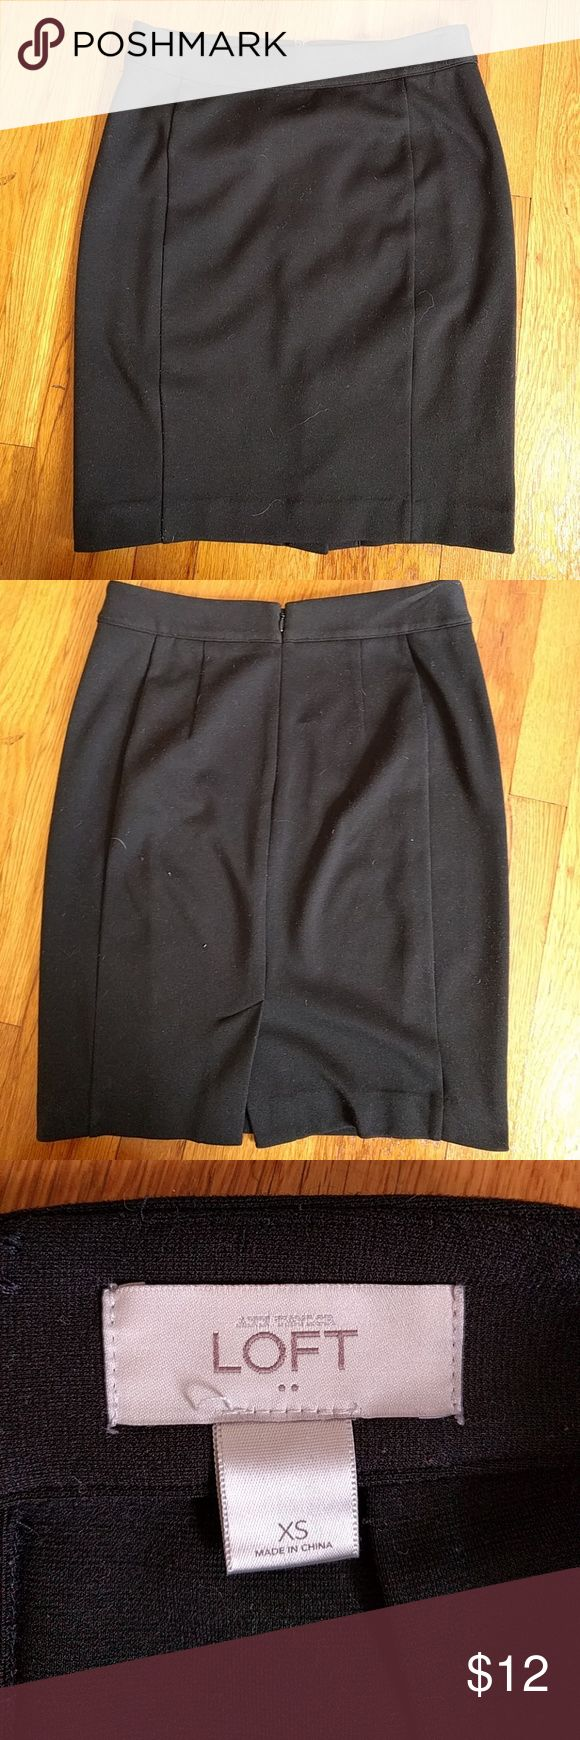 """LOFT XS stretchy black pencil skirt Excellent condition black pencil skirt from the LOFT factory store. Stretchy and comfortable with back slit. Hook closure is missing a piece (as shown) and price reflects that. Waist measures 14"""" across, length is 19.5"""". LOFT Skirts Pencil"""